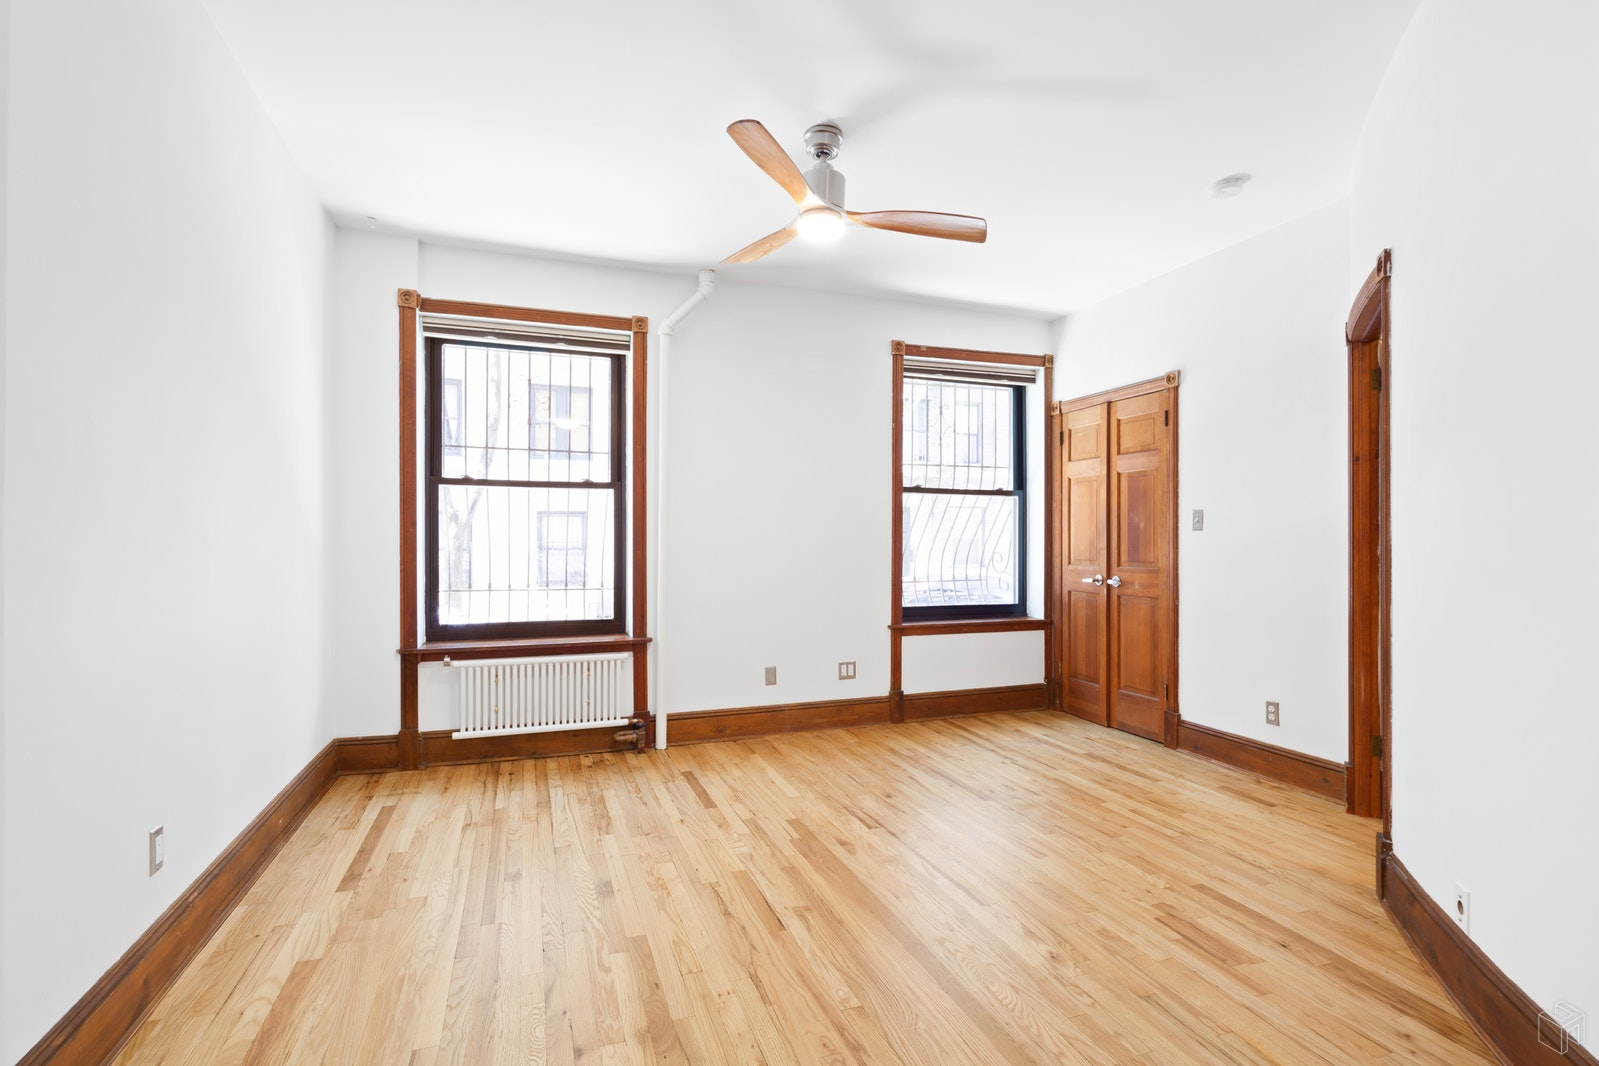 251 Pacific Street 2, Boerum Hill, Brooklyn, NY, 11201, $470,000, Sold Property, Halstead Real Estate, Photo 2